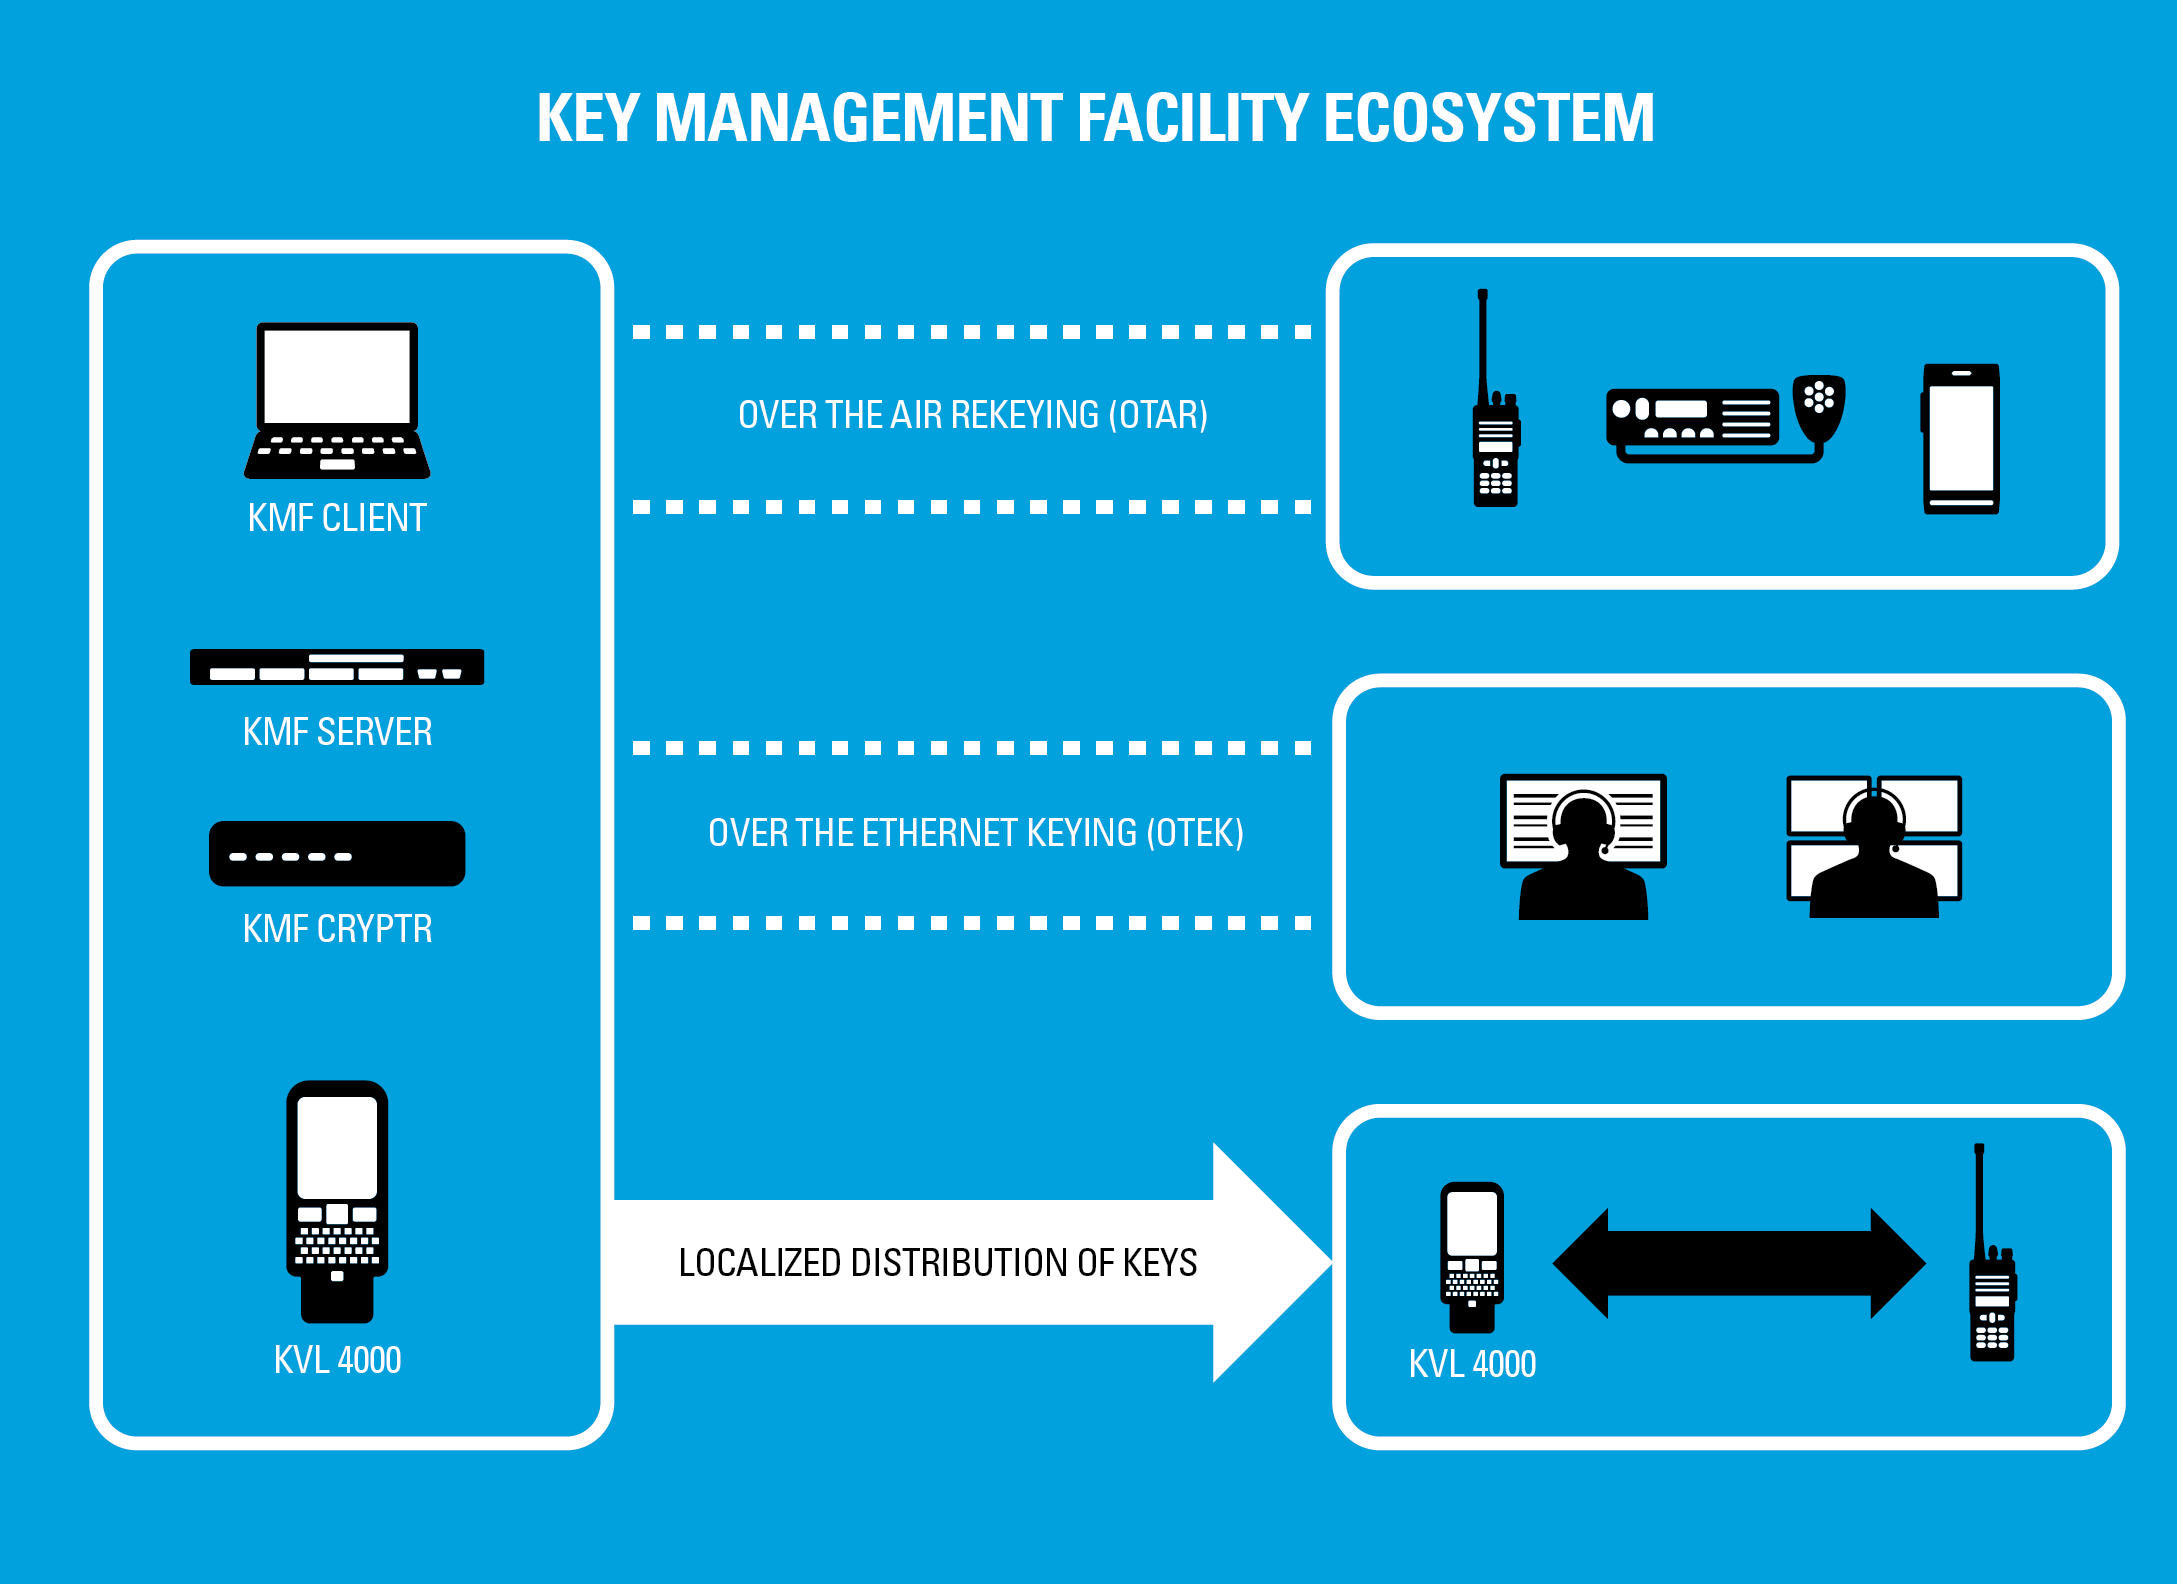 TETRA Key Management Facility Ecosystem